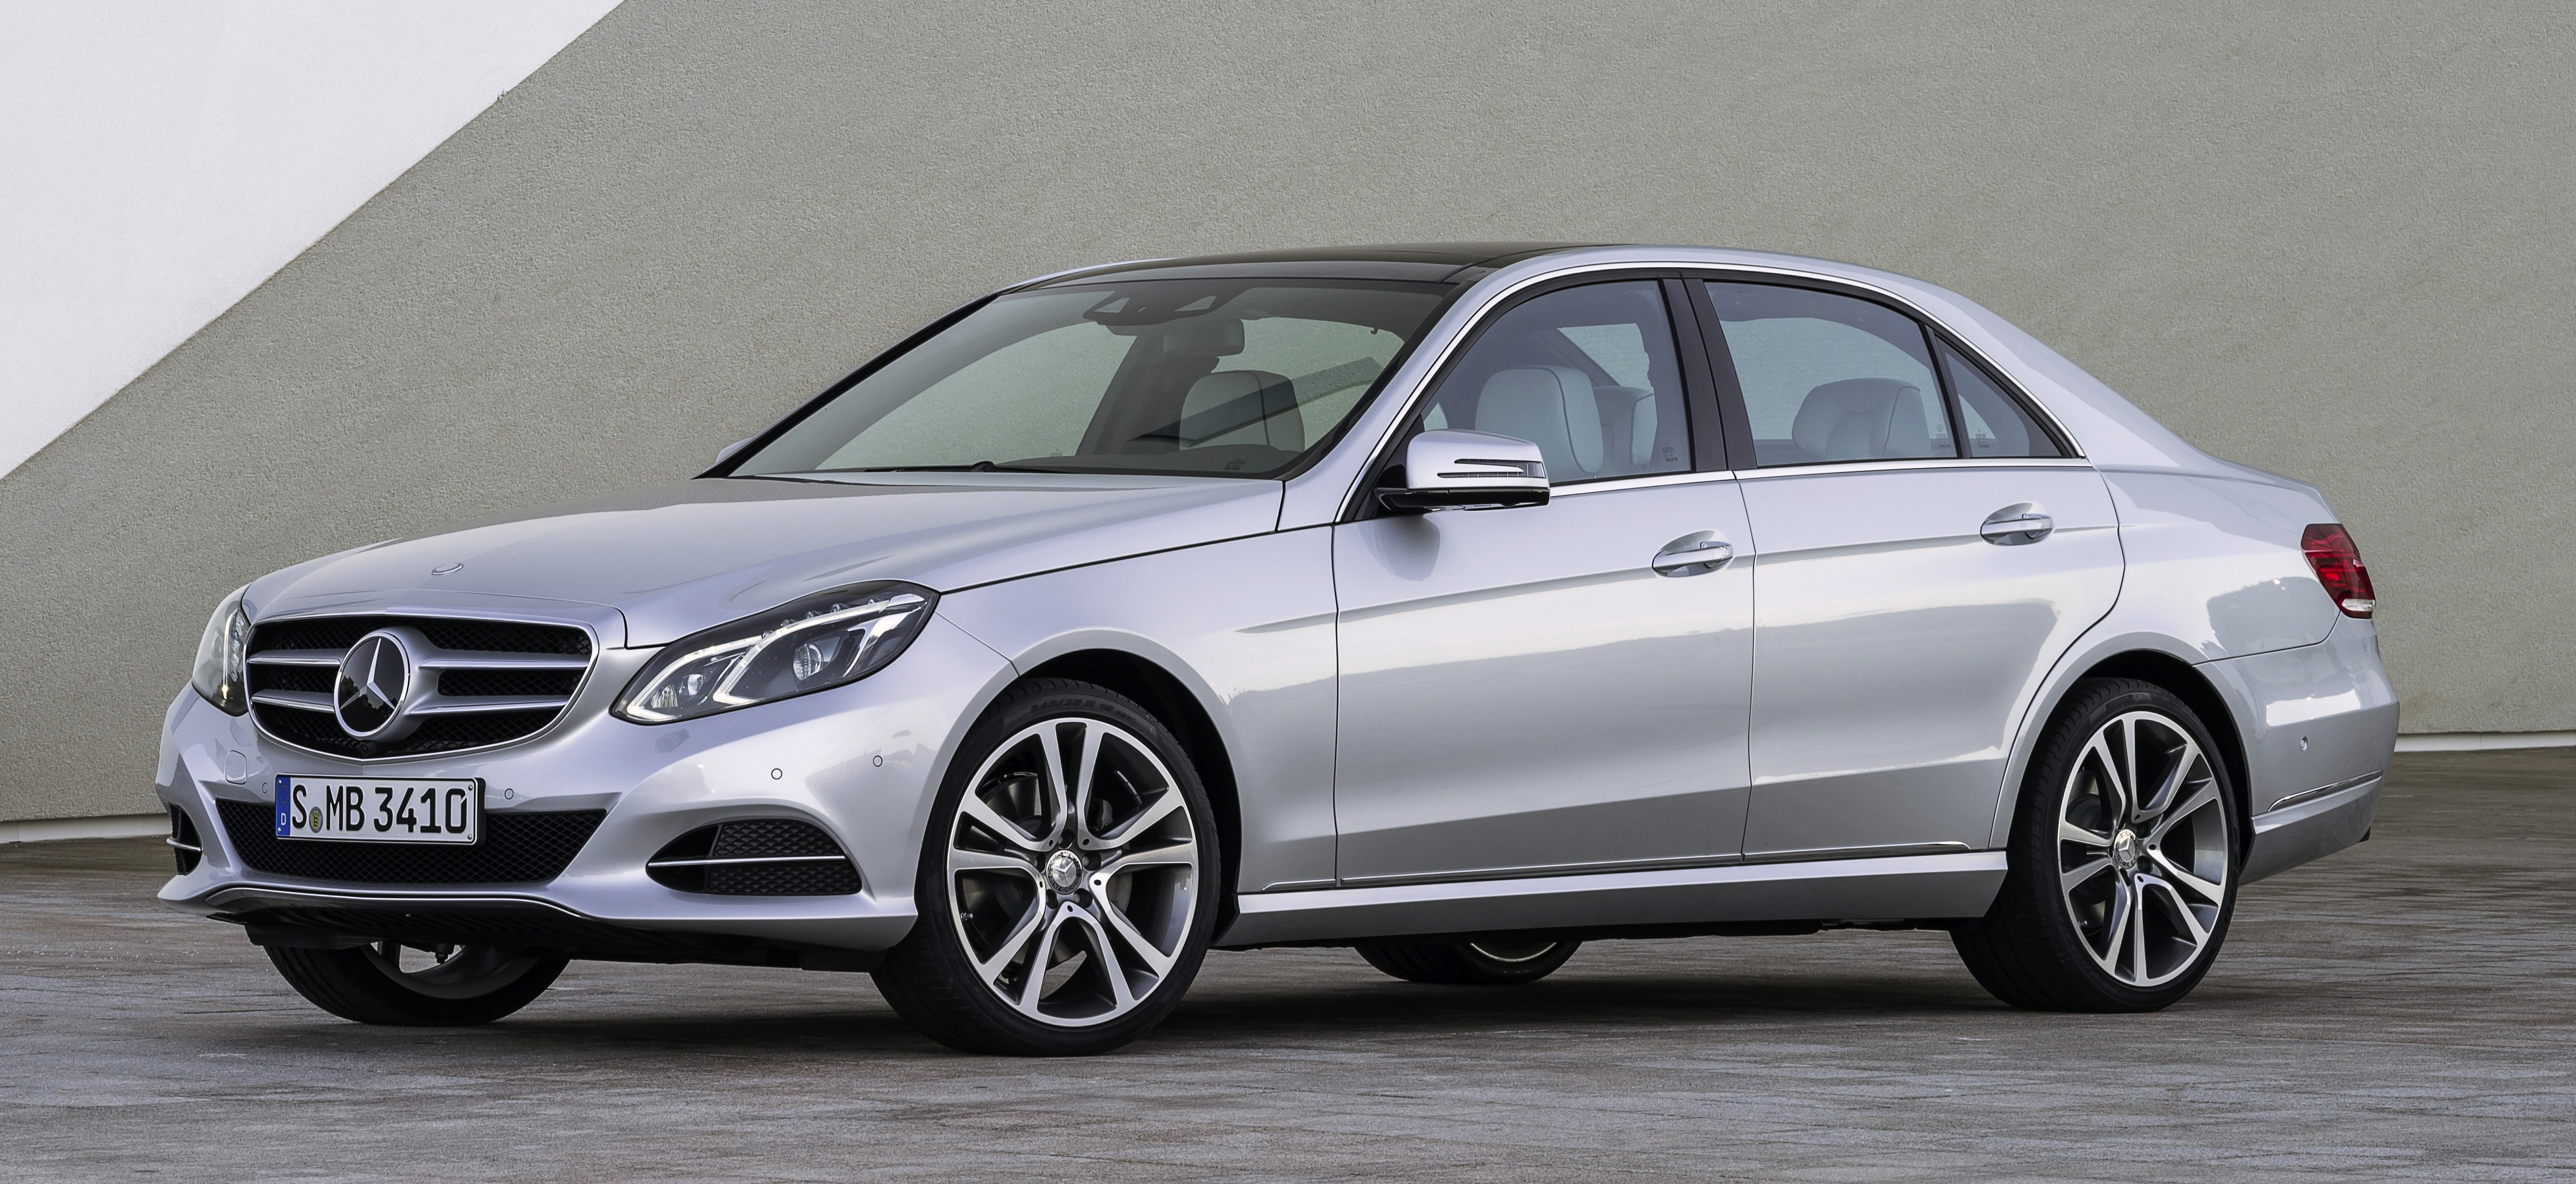 Mercedes benz e350 bluetec first to get 9g tronic for Mercedes benz worldwide sales figures